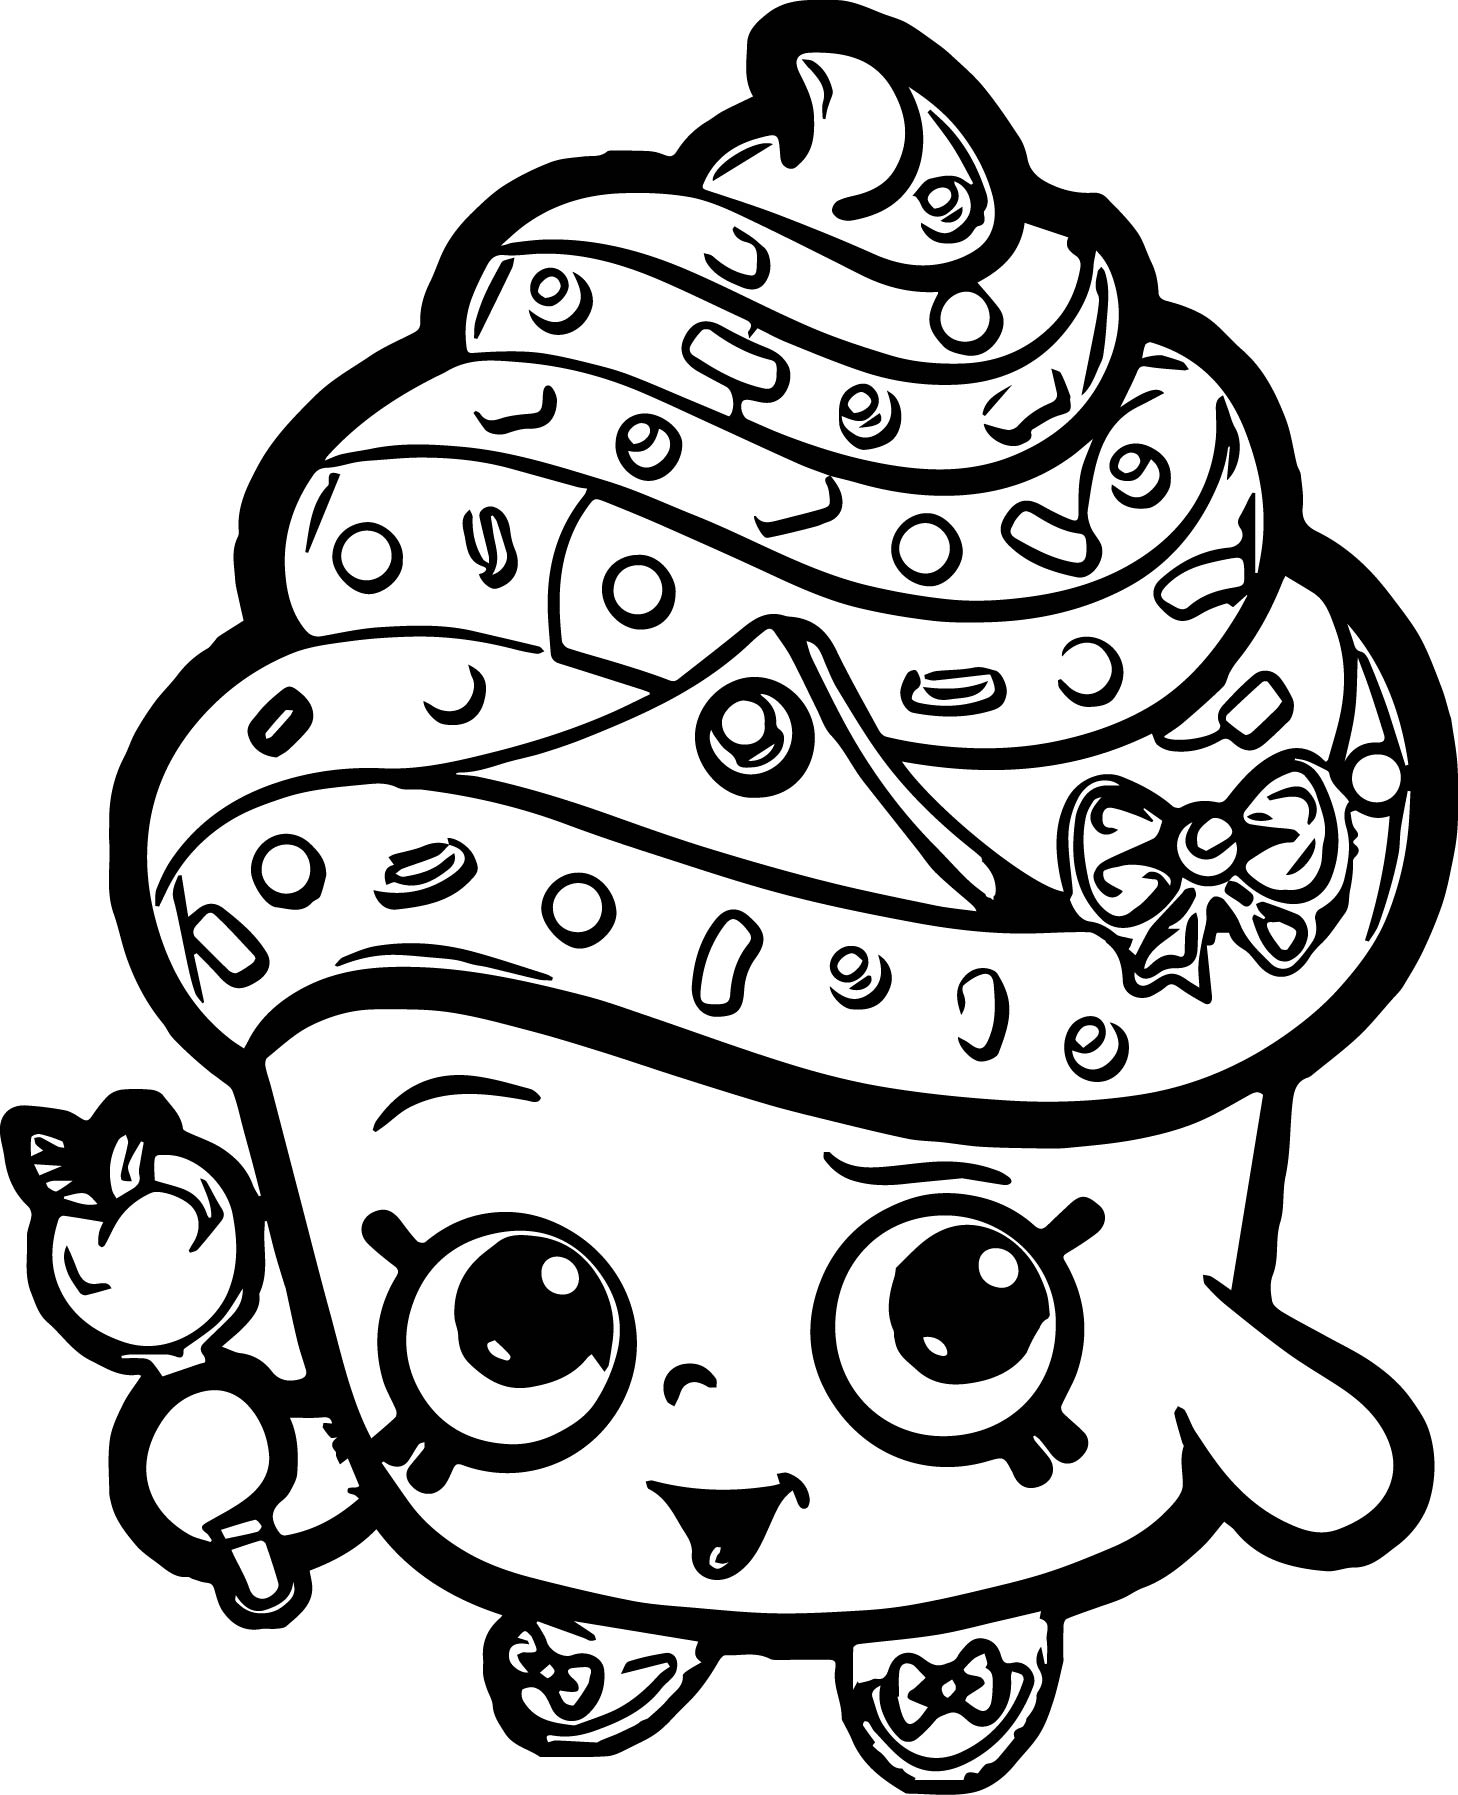 Coloring games of shopkins - Cupcake Queen Shopkins Coloring Page